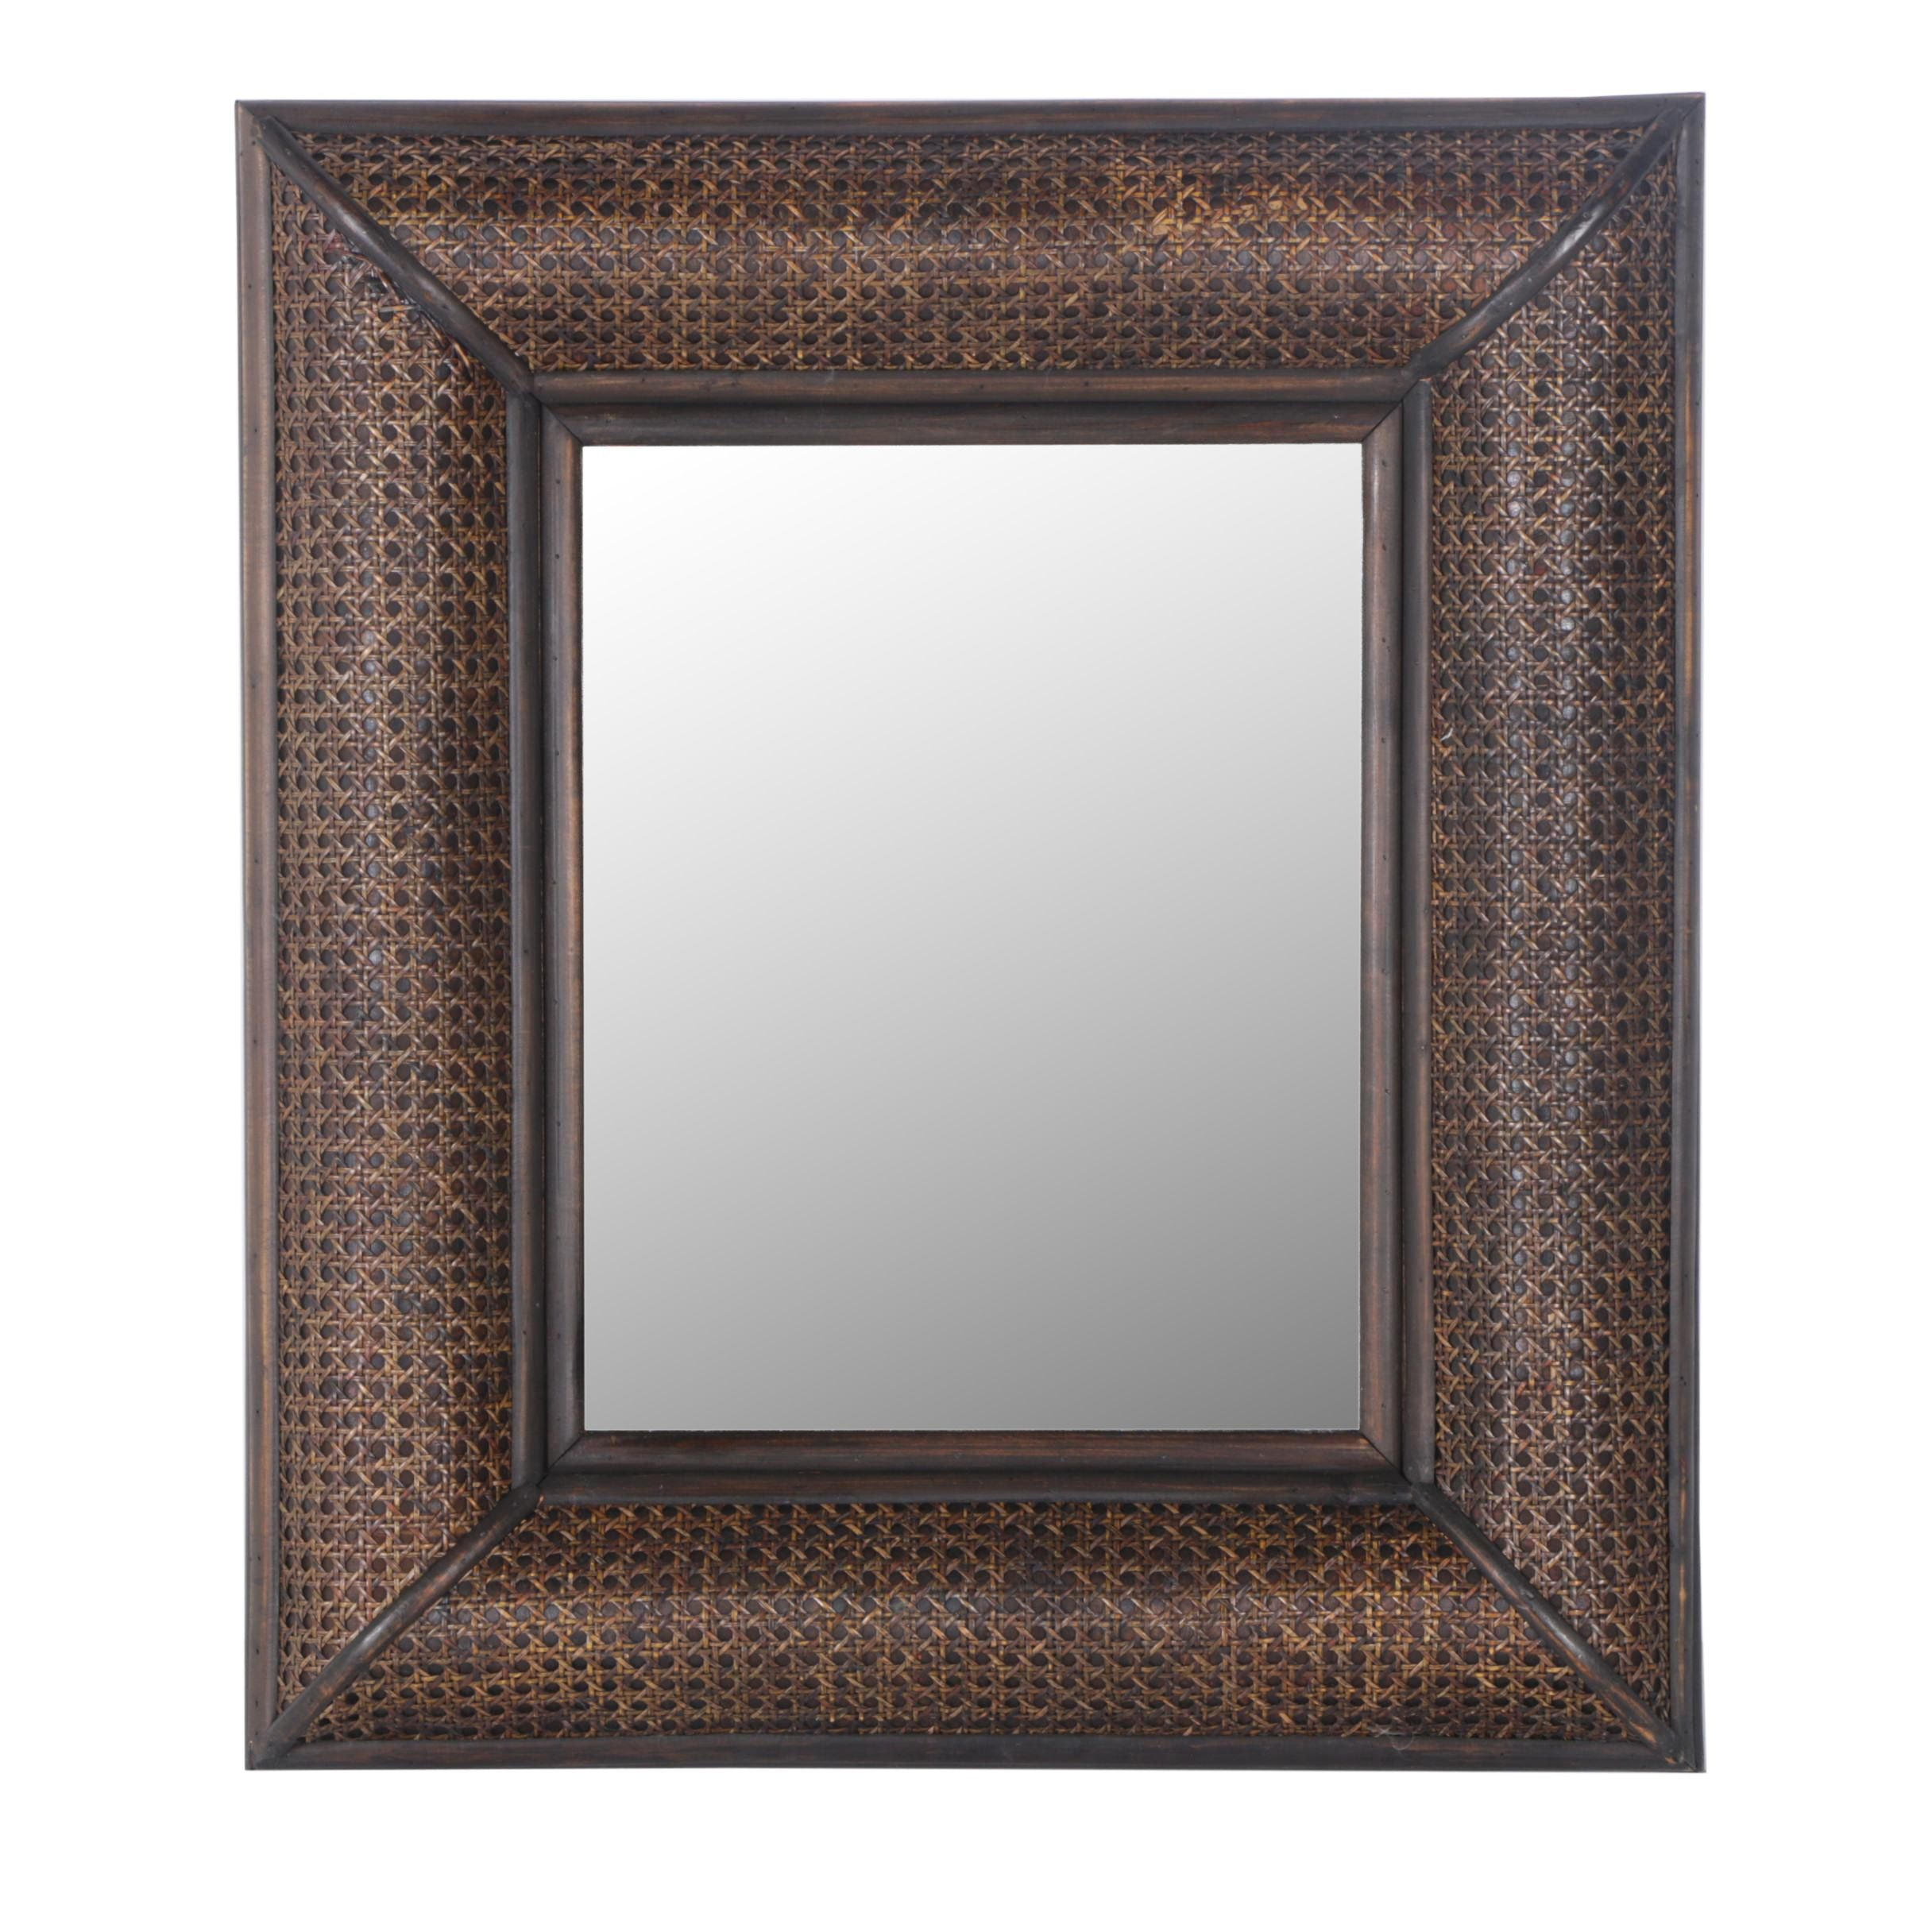 Silverwood Products Wall Mirror